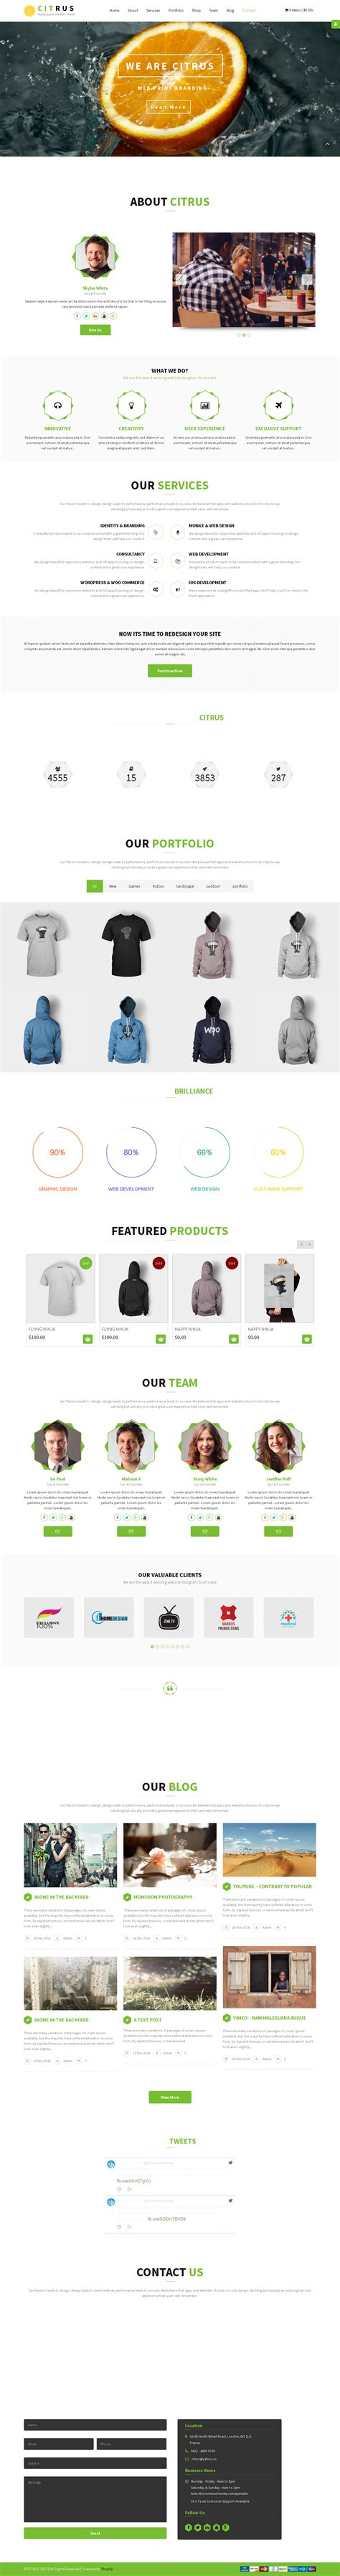 shopify themes parallax 5 shopify premium themes for photographers photo stores